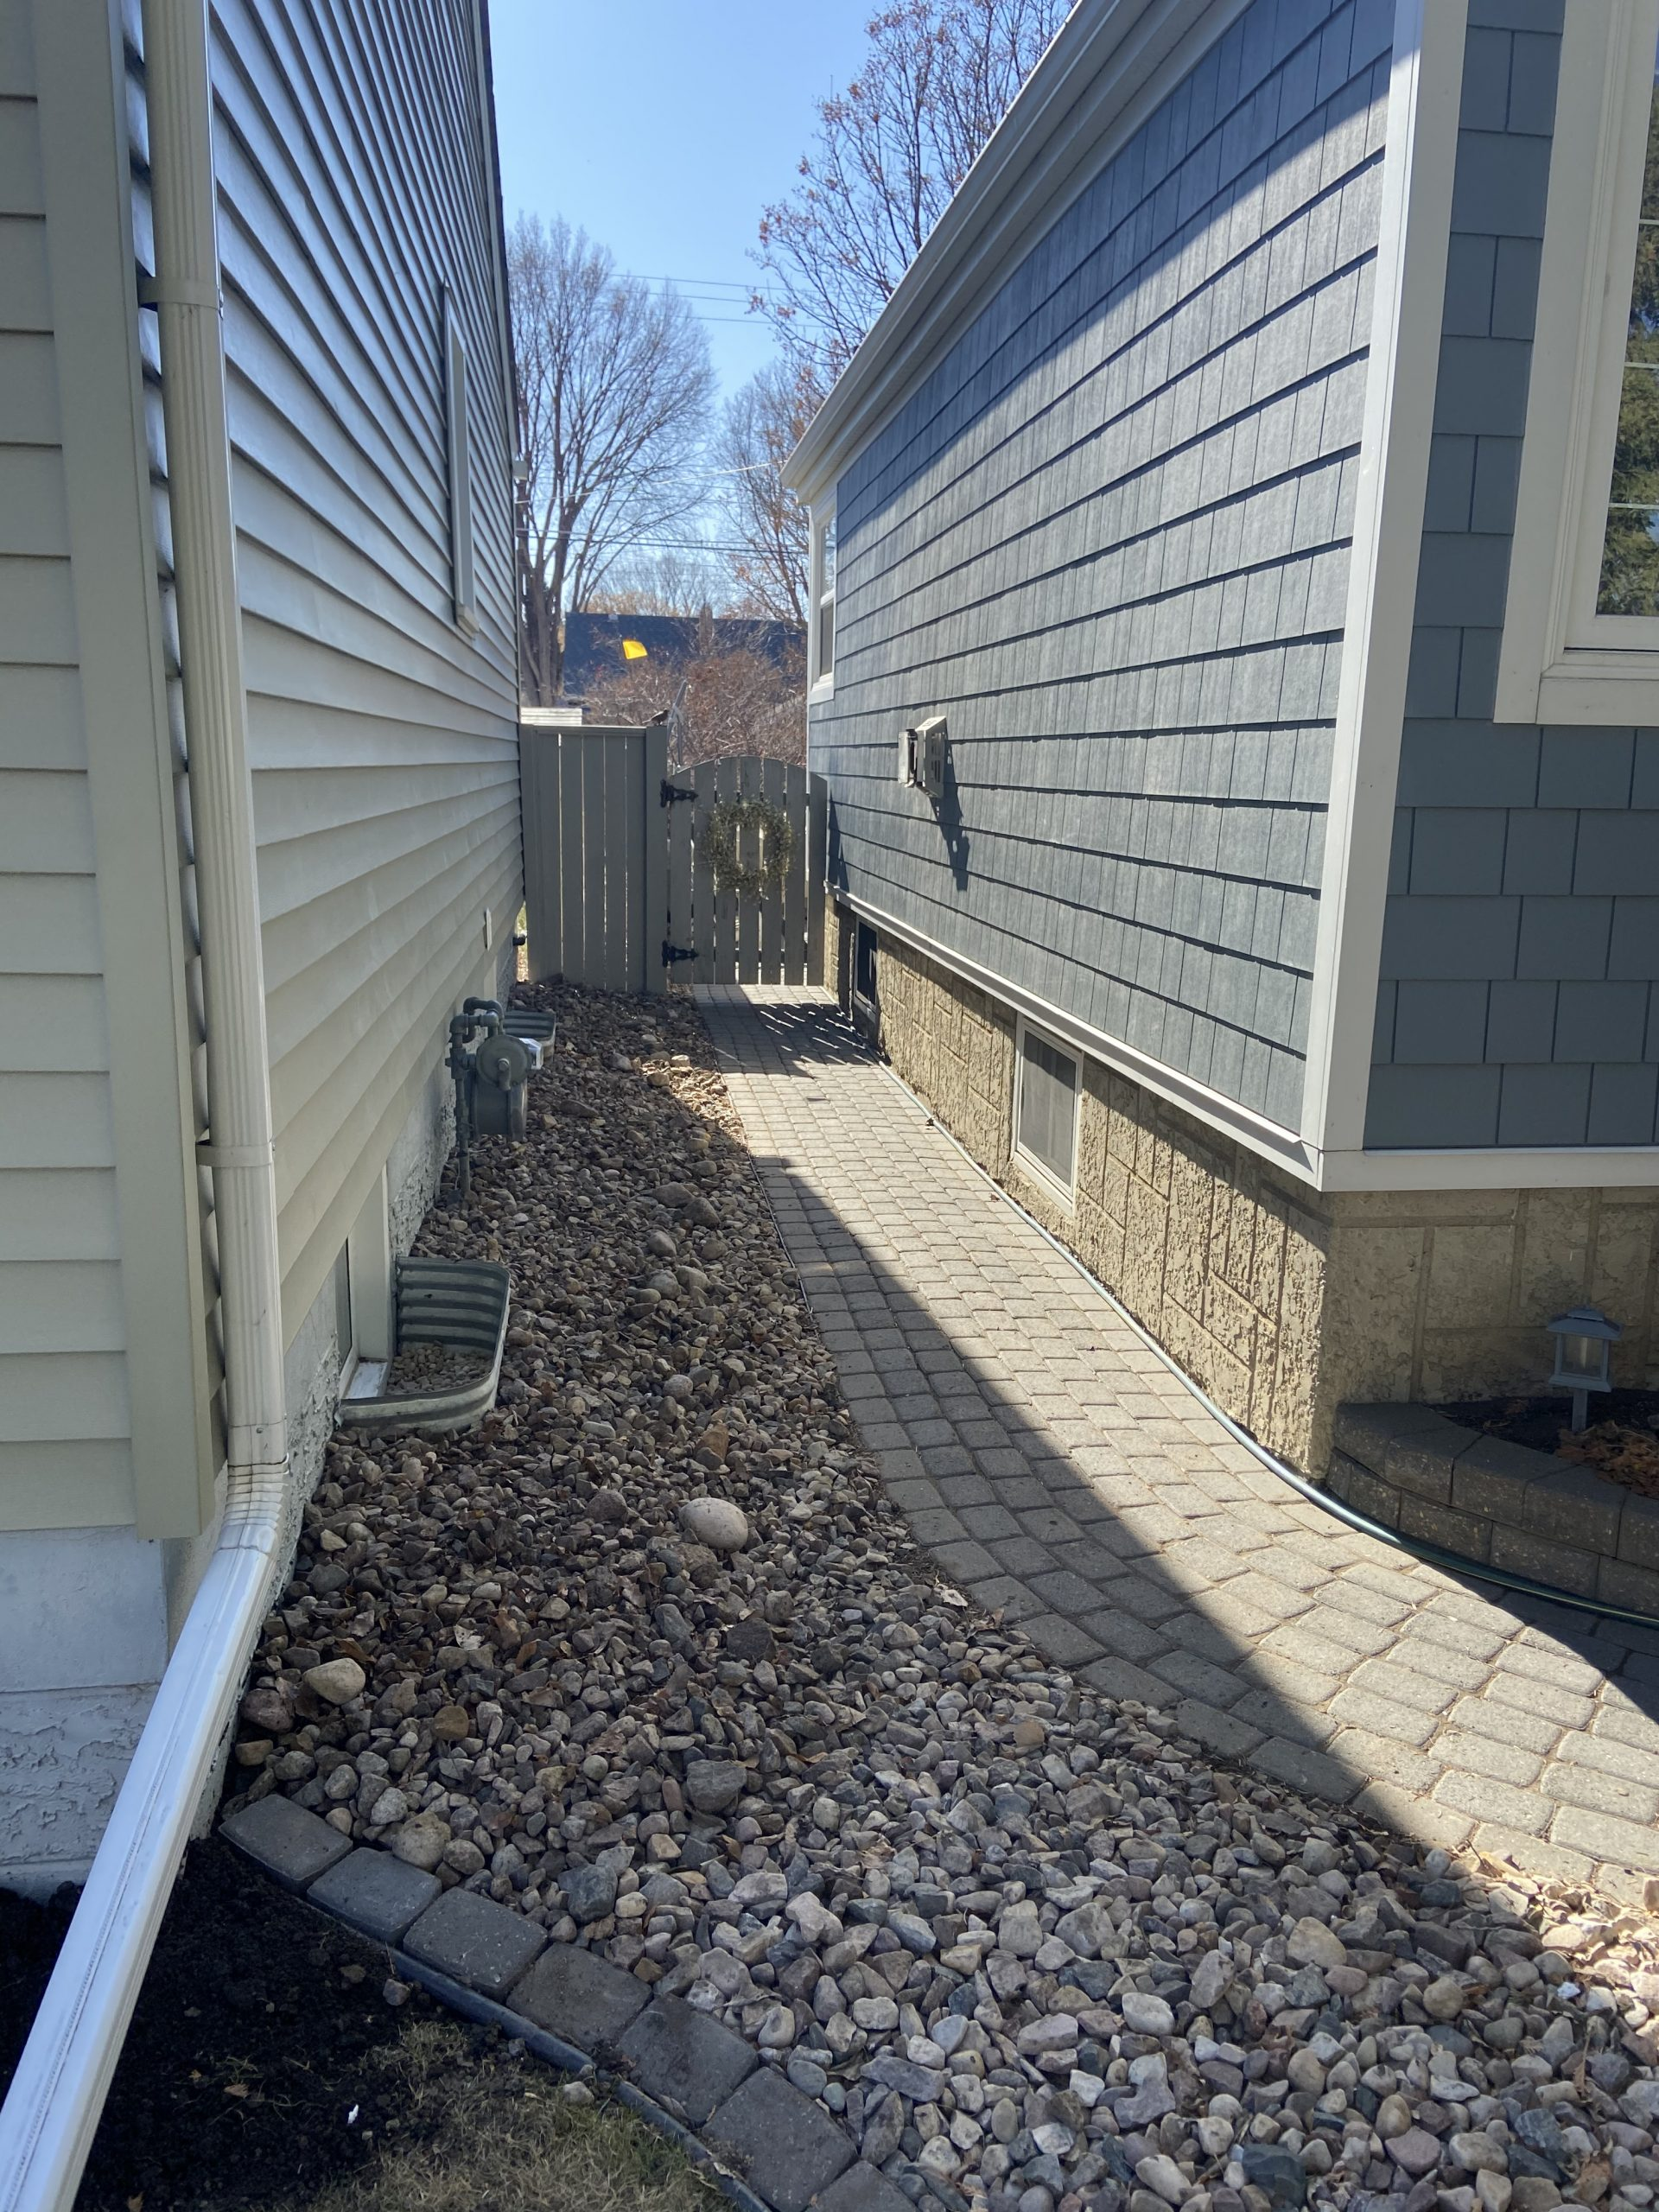 The side of a house with a rock garden, stone path and basement windows after using the hand-excavation method to waterproof it's foundation. No damages to the delicate pathway, rock garden or basement windows.